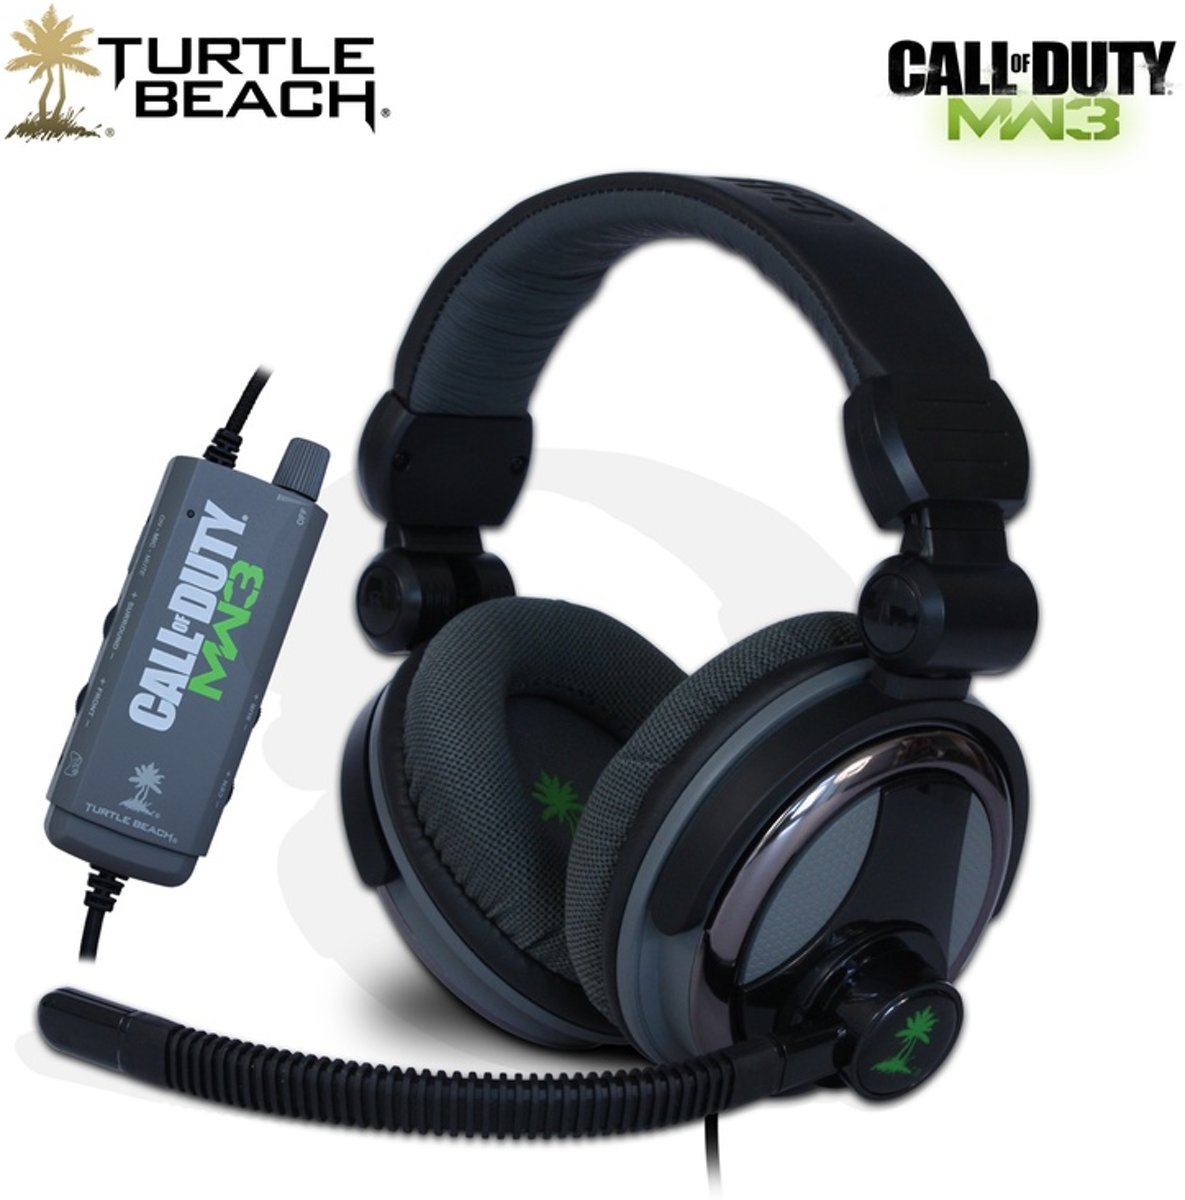 Turtle Beach Ear Force Charlie Call Of Duty: Modern Warfare 3 Wired 5.1 Surround Gaming Headset - Zwart (PC)